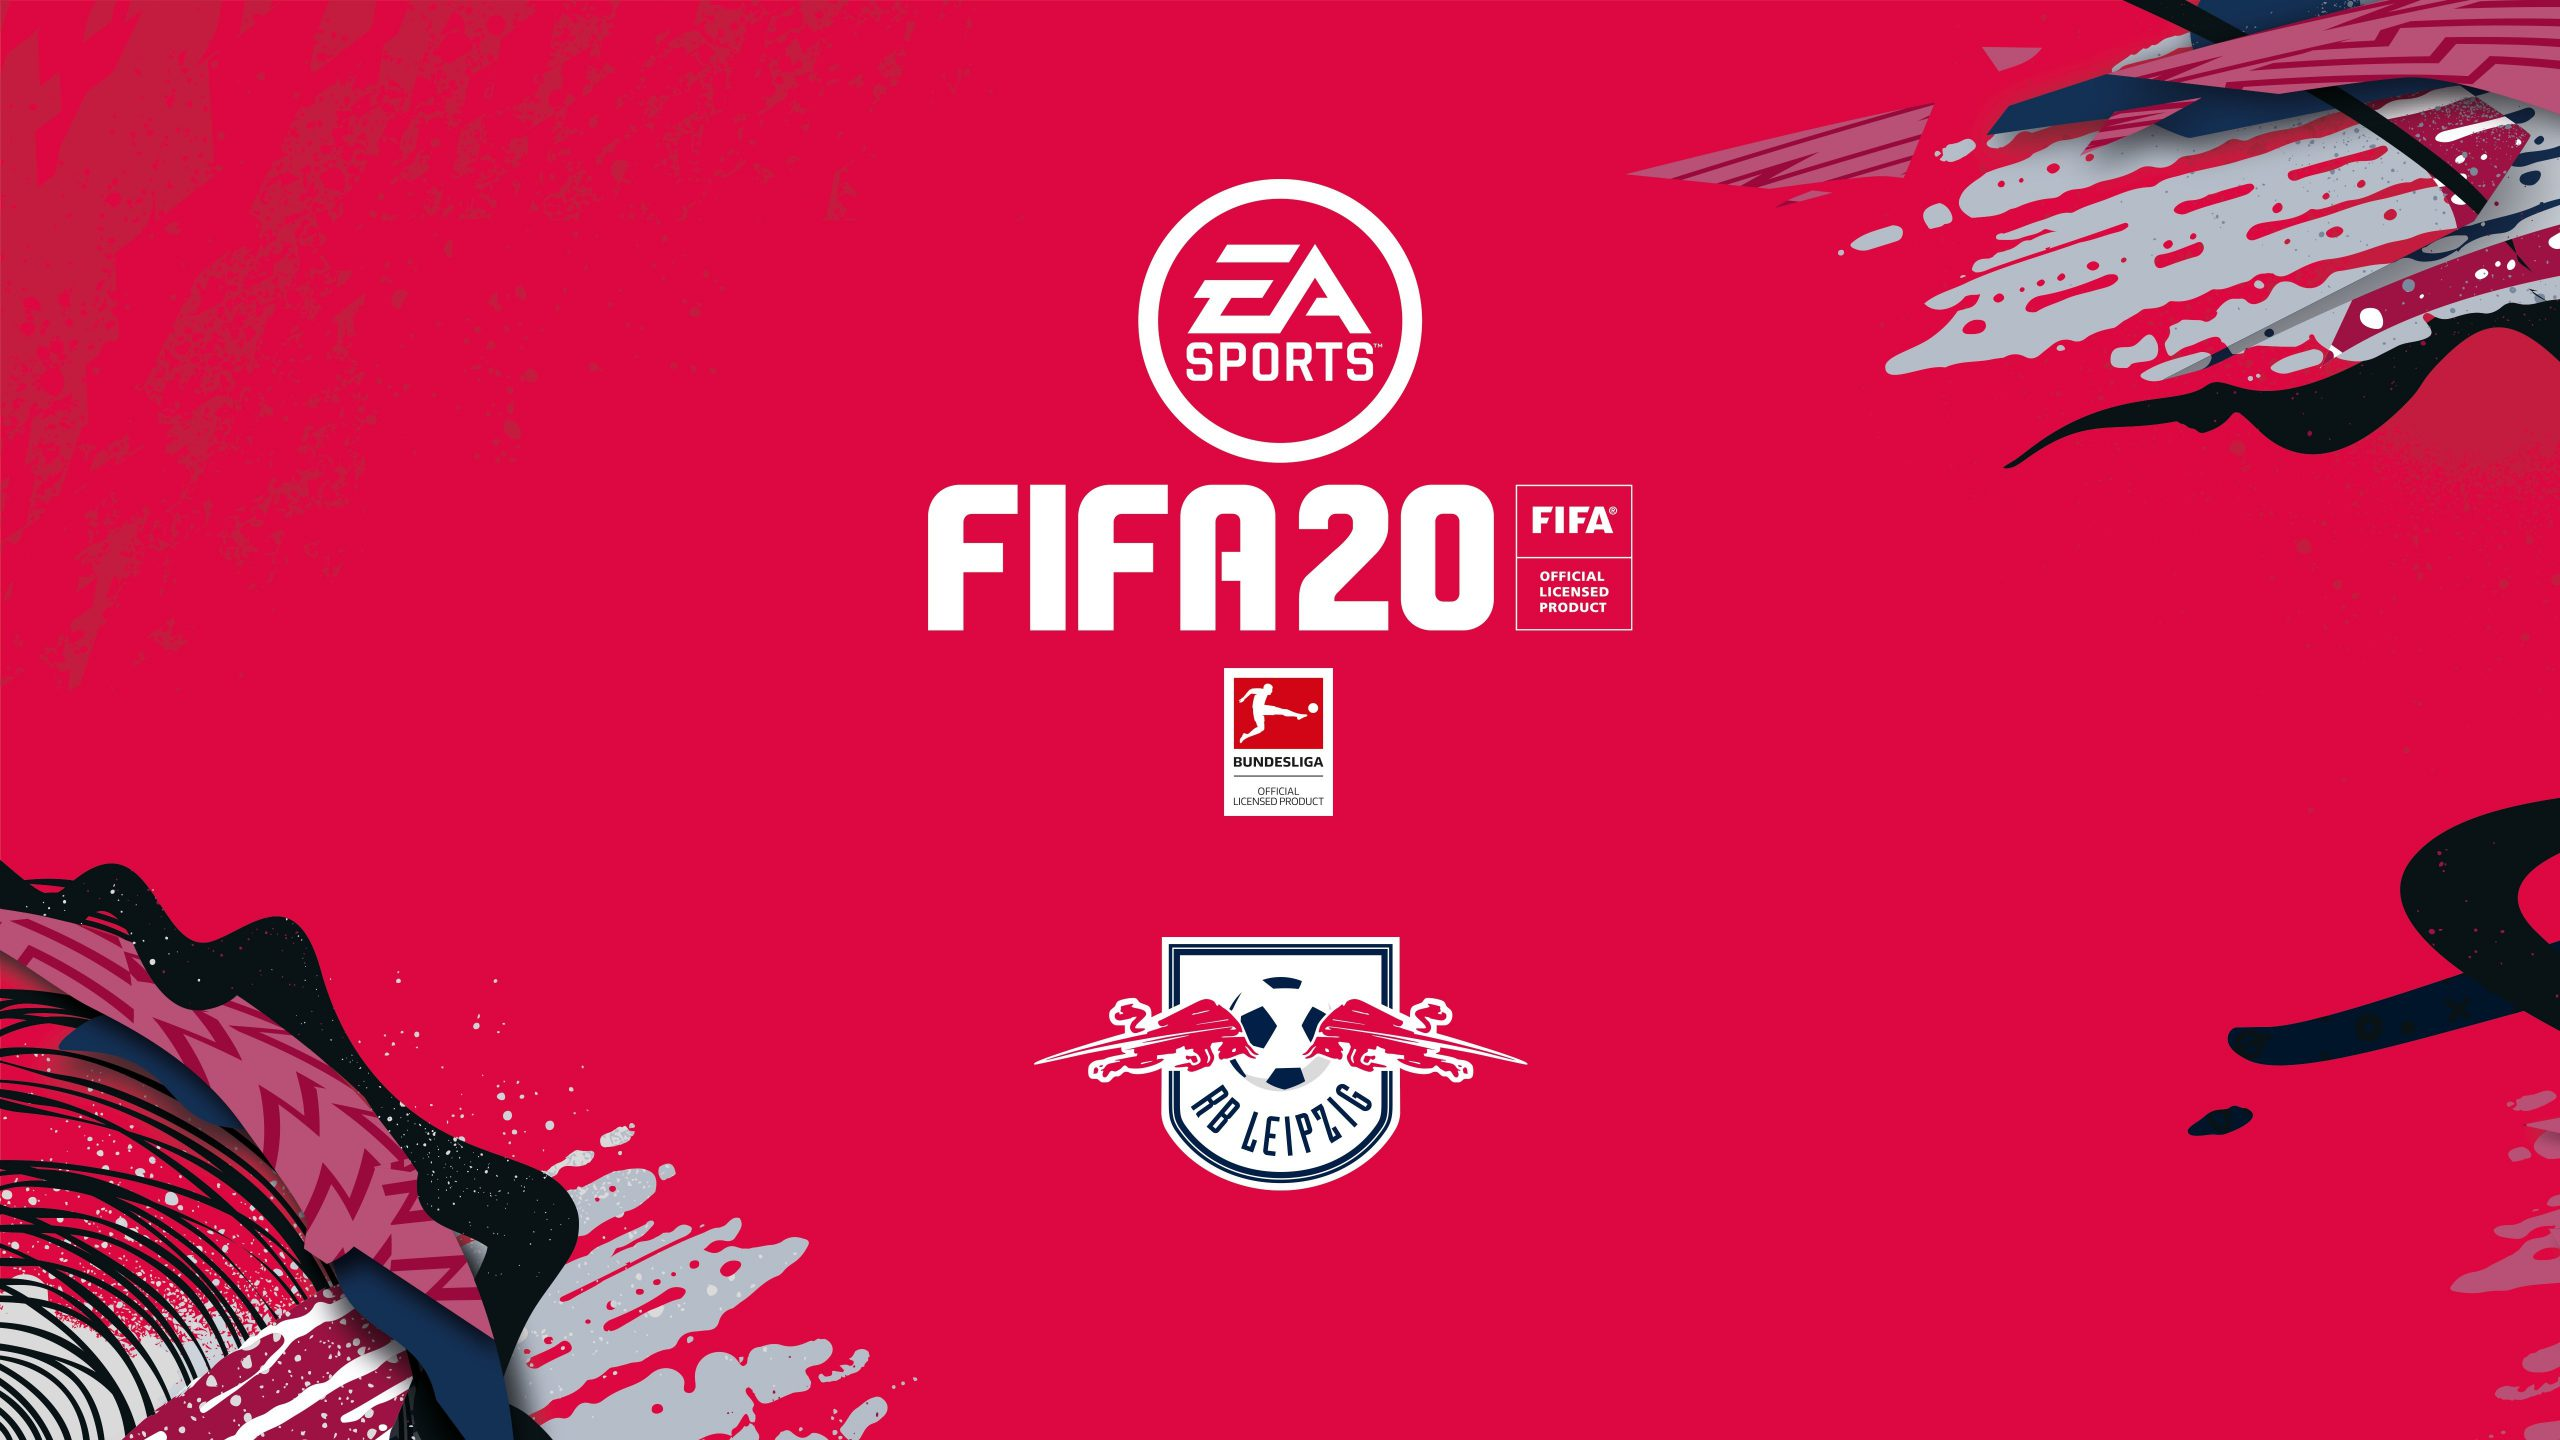 Fifa 20 Leipzig Wallpaper Kolpaper Awesome Free Hd Wallpapers